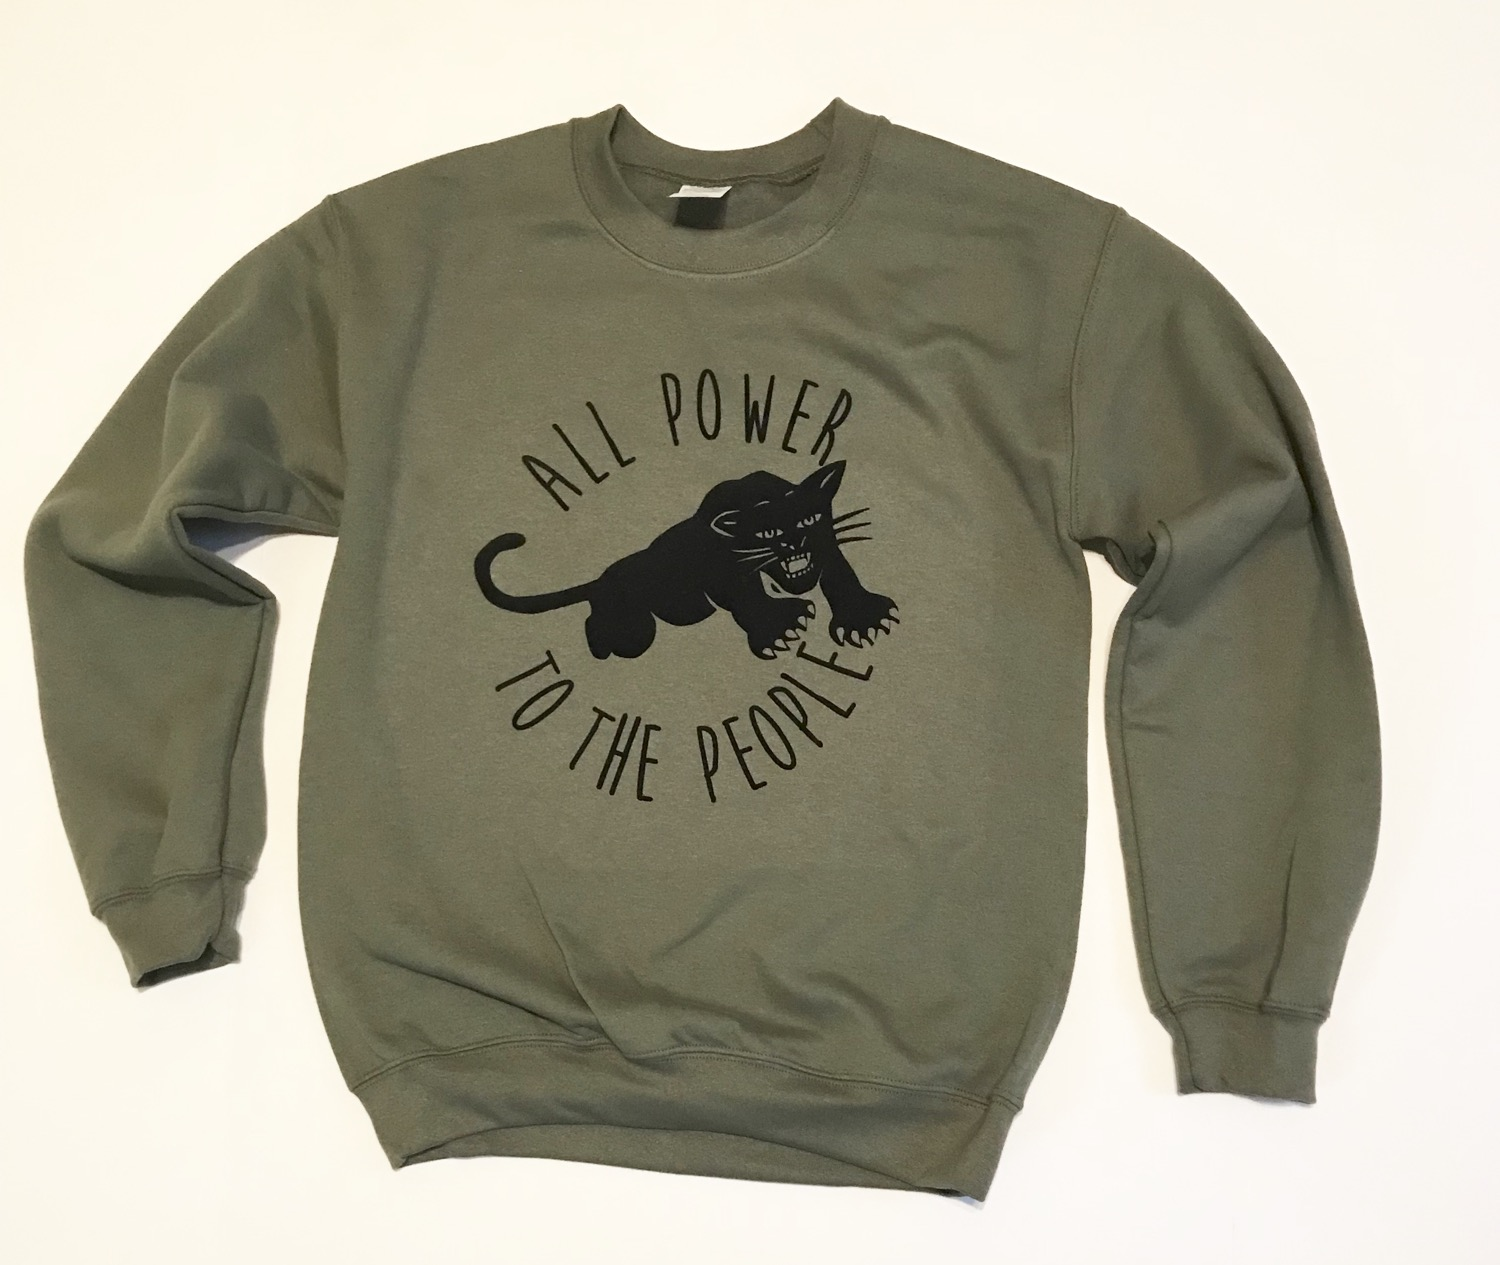 """All Power"" Sweater inspired by the Black Panther Party"